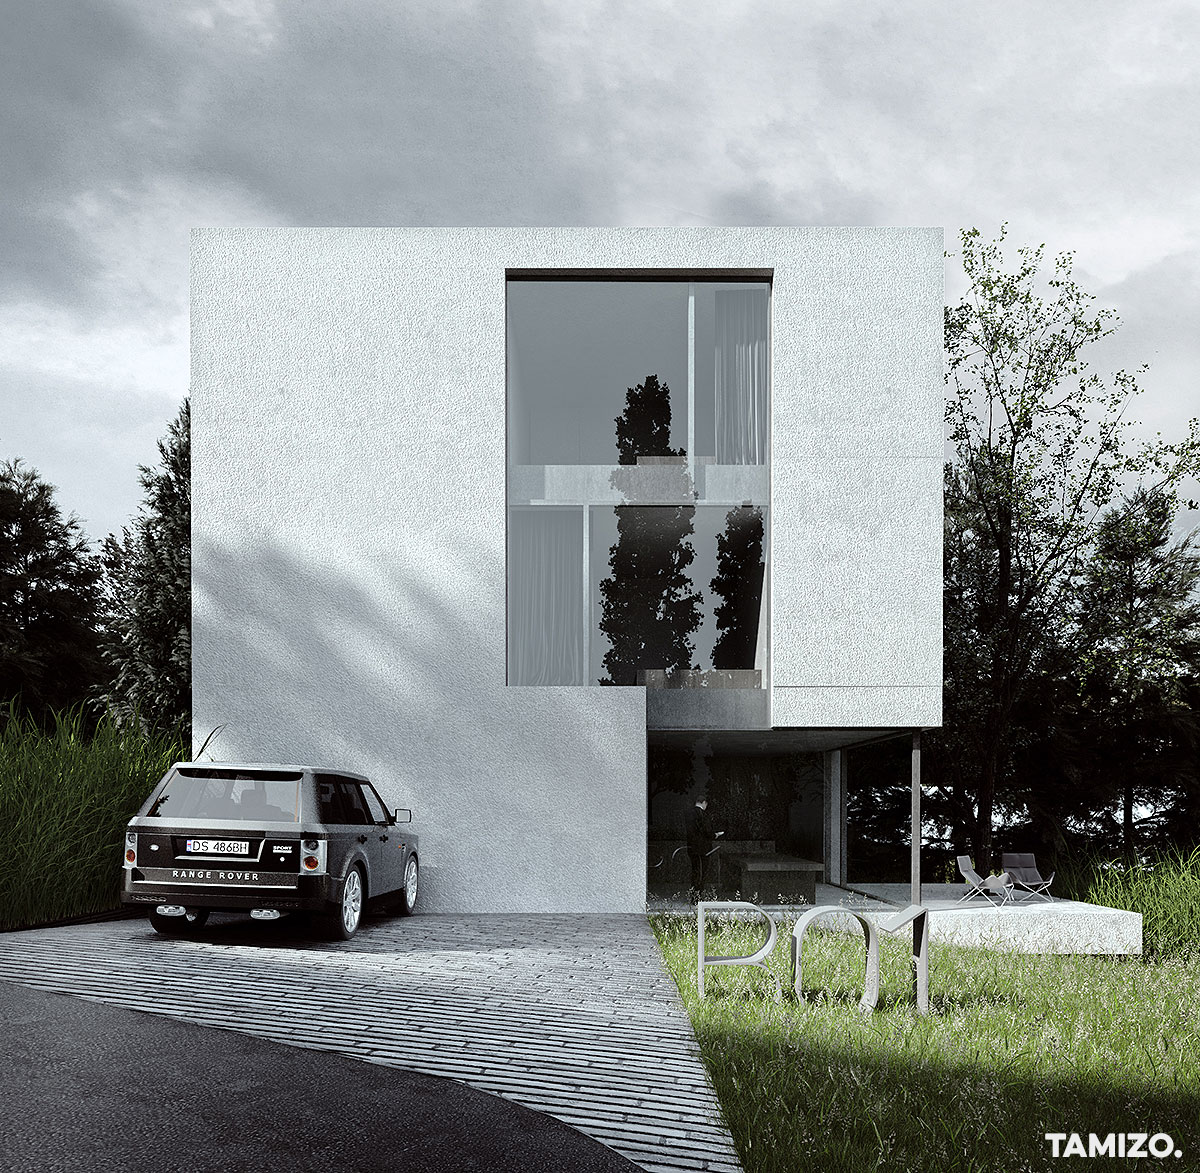 A061_tamizo_architects_competition_tbilisi_georgia_multifamily_houseing_realestate_08